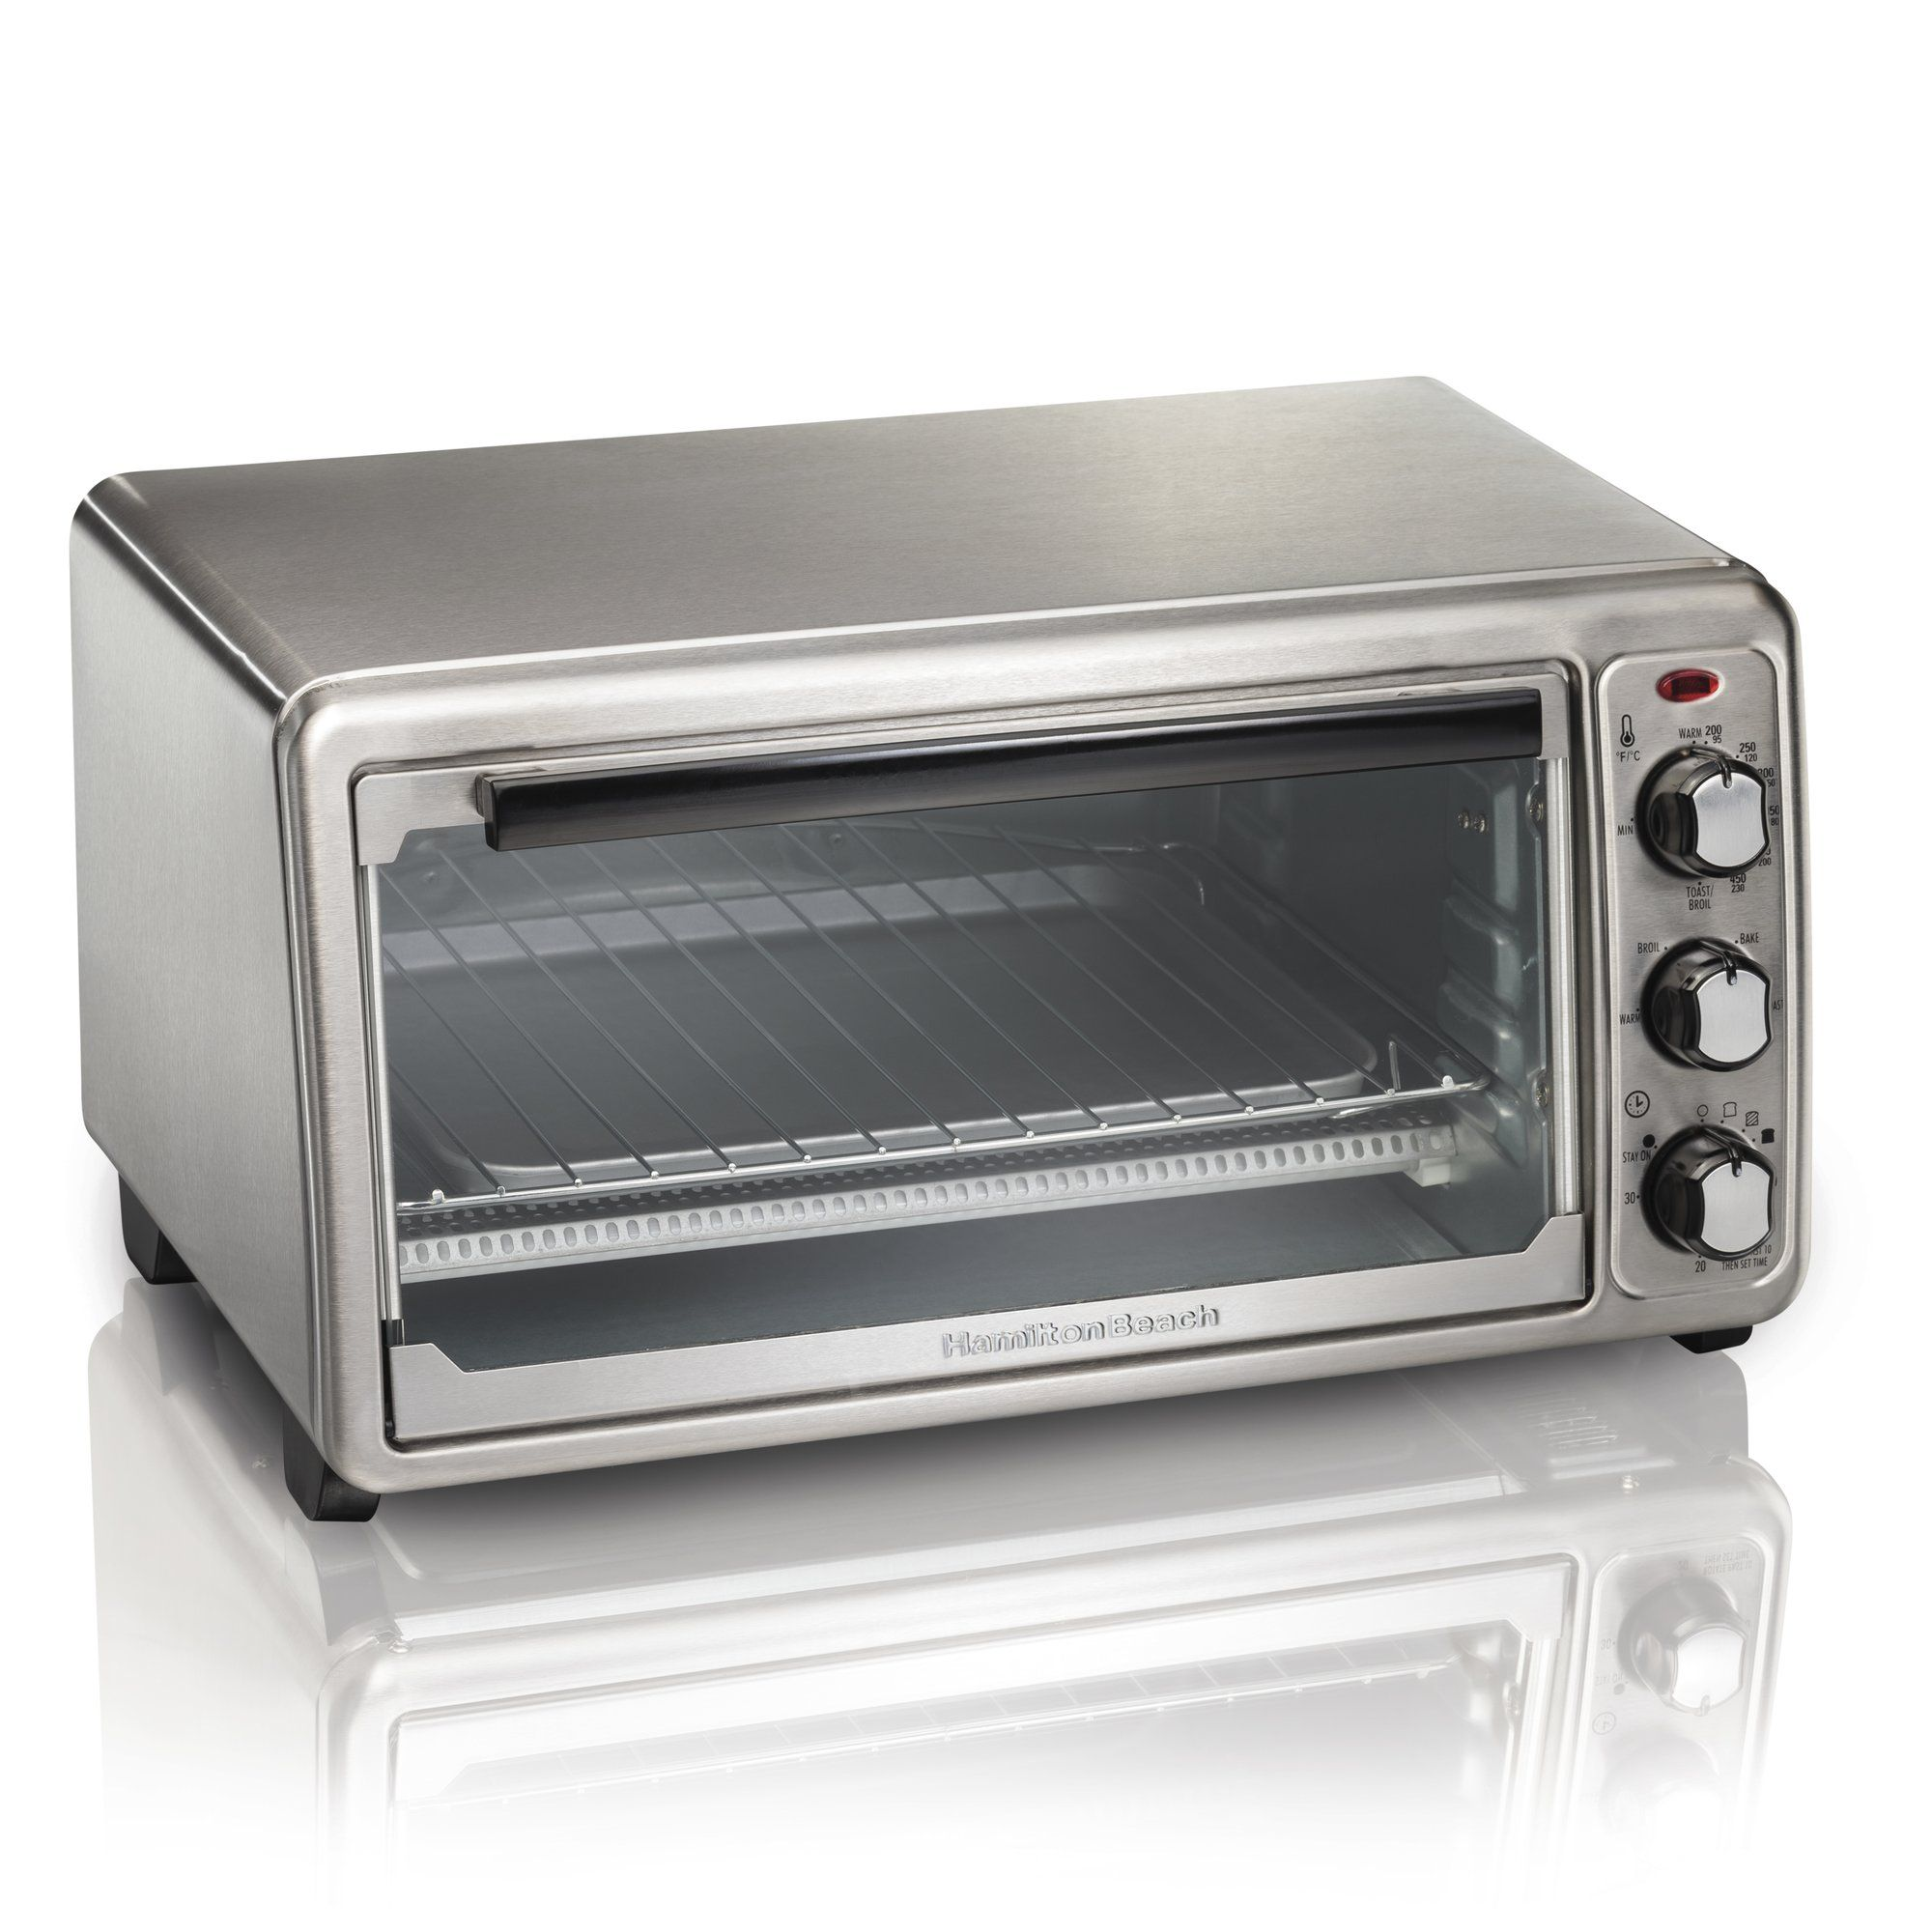 loud toaster oven the beeper android mini quieting breville ridiculously